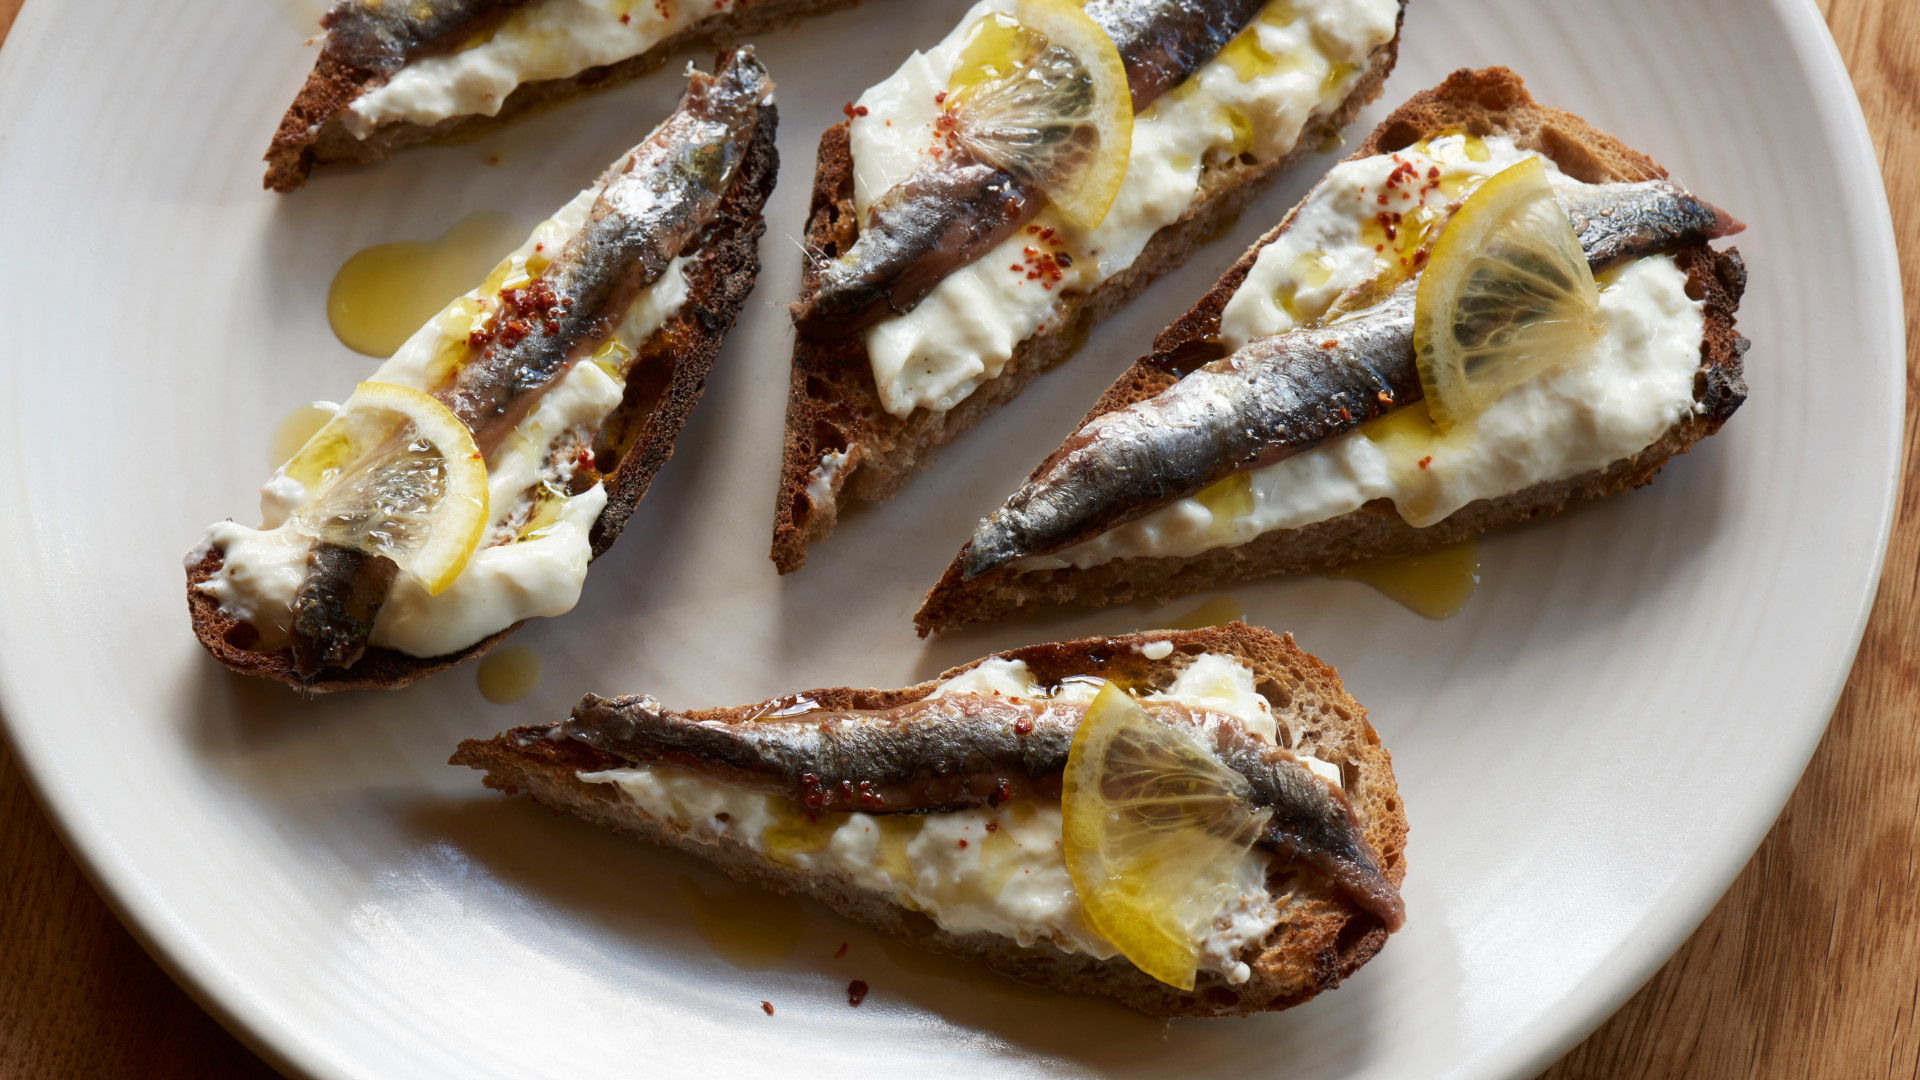 Stracciatella,lemons and anchovy from Palentino, Clerkenwell